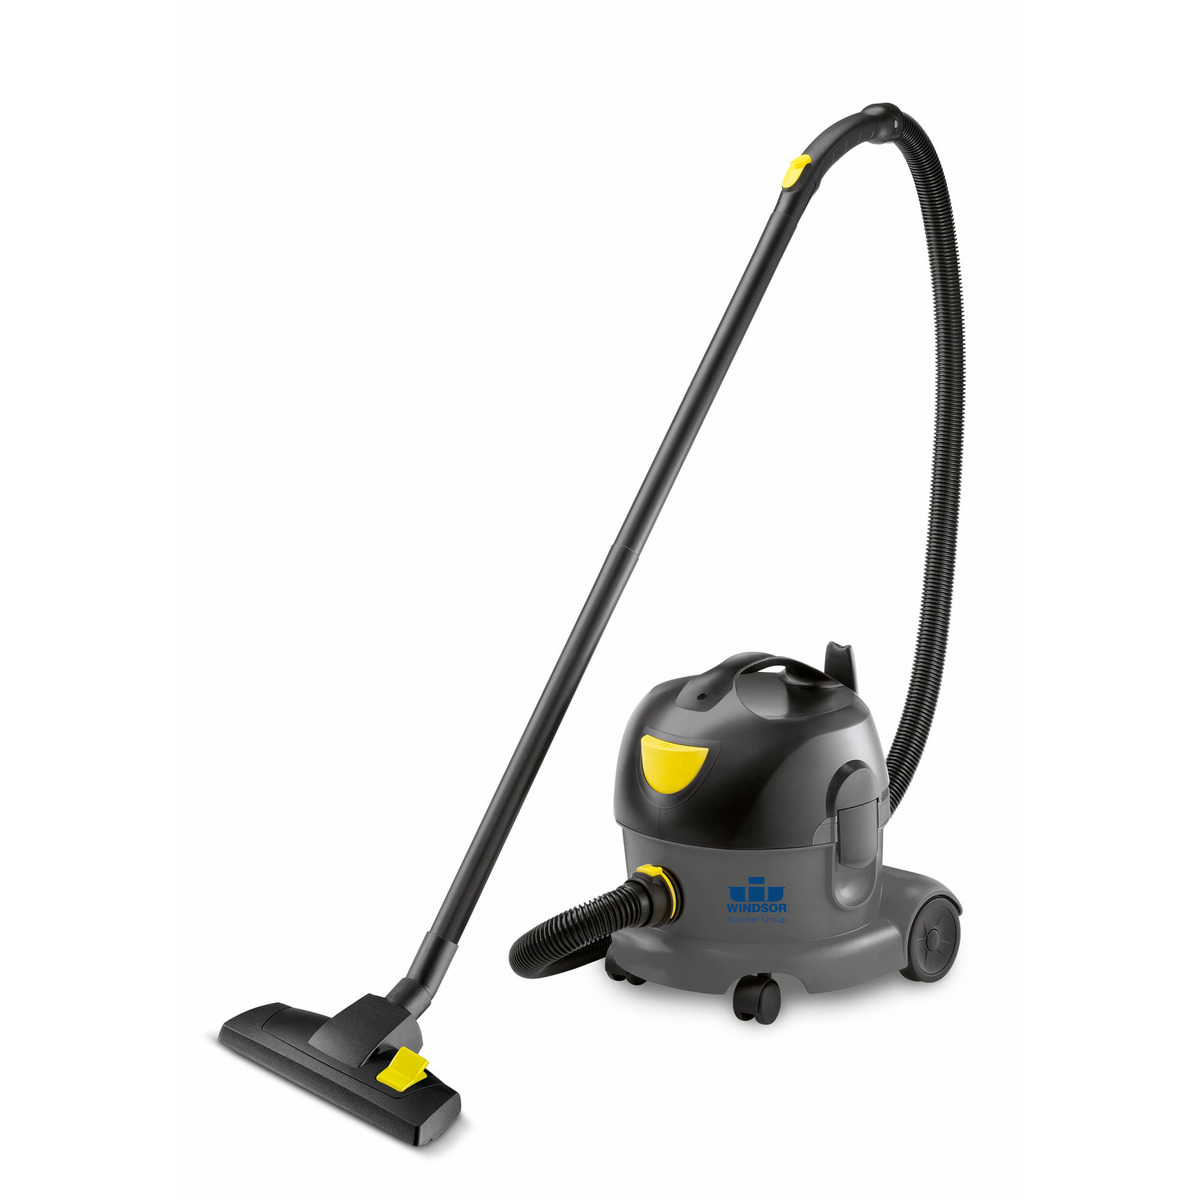 Windsor Trek Vac2 Vacuum Cleaner